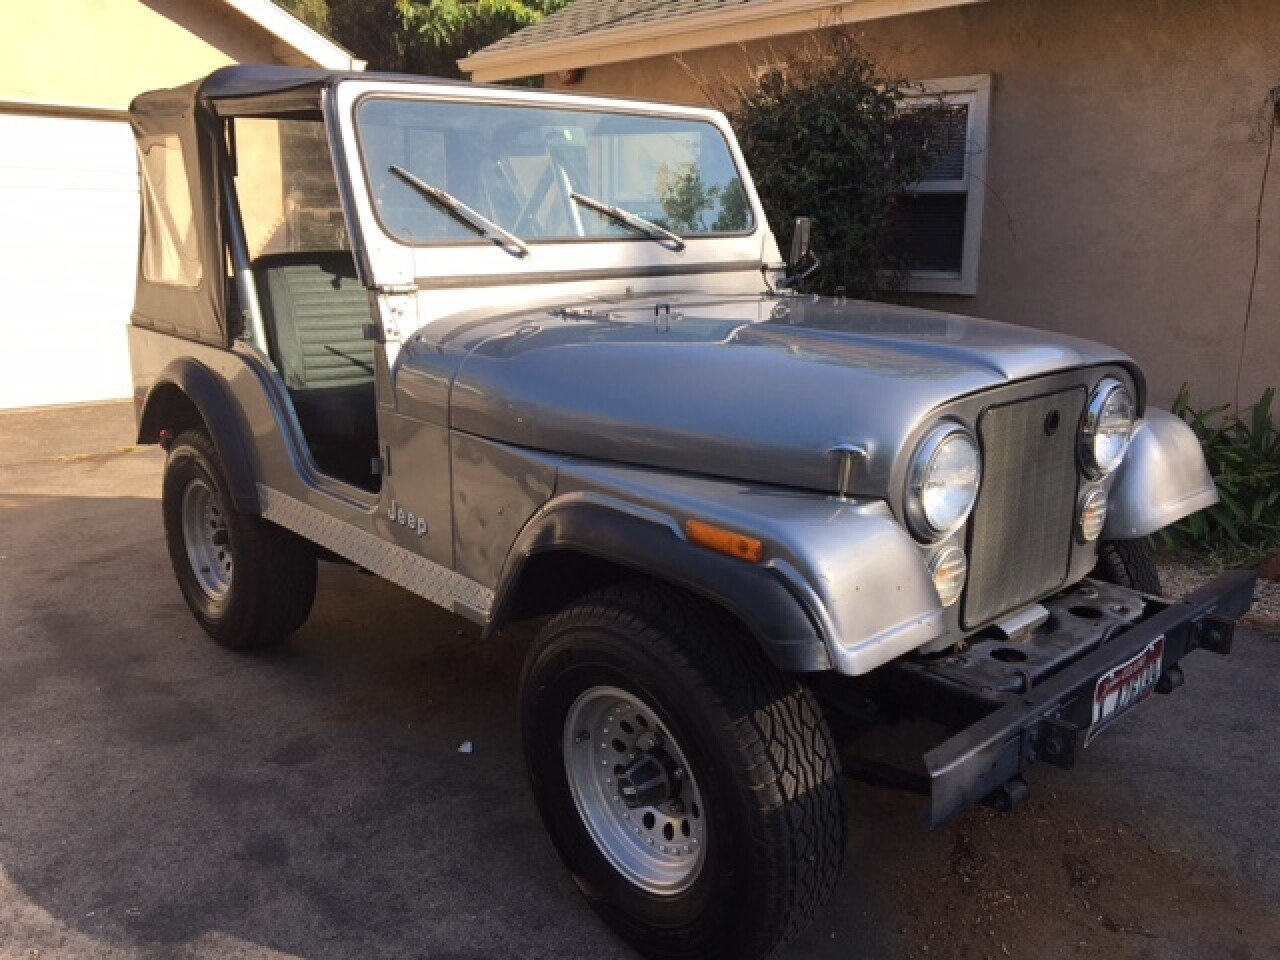 1980 jeep cj-5 classics for  - classics on autotrader